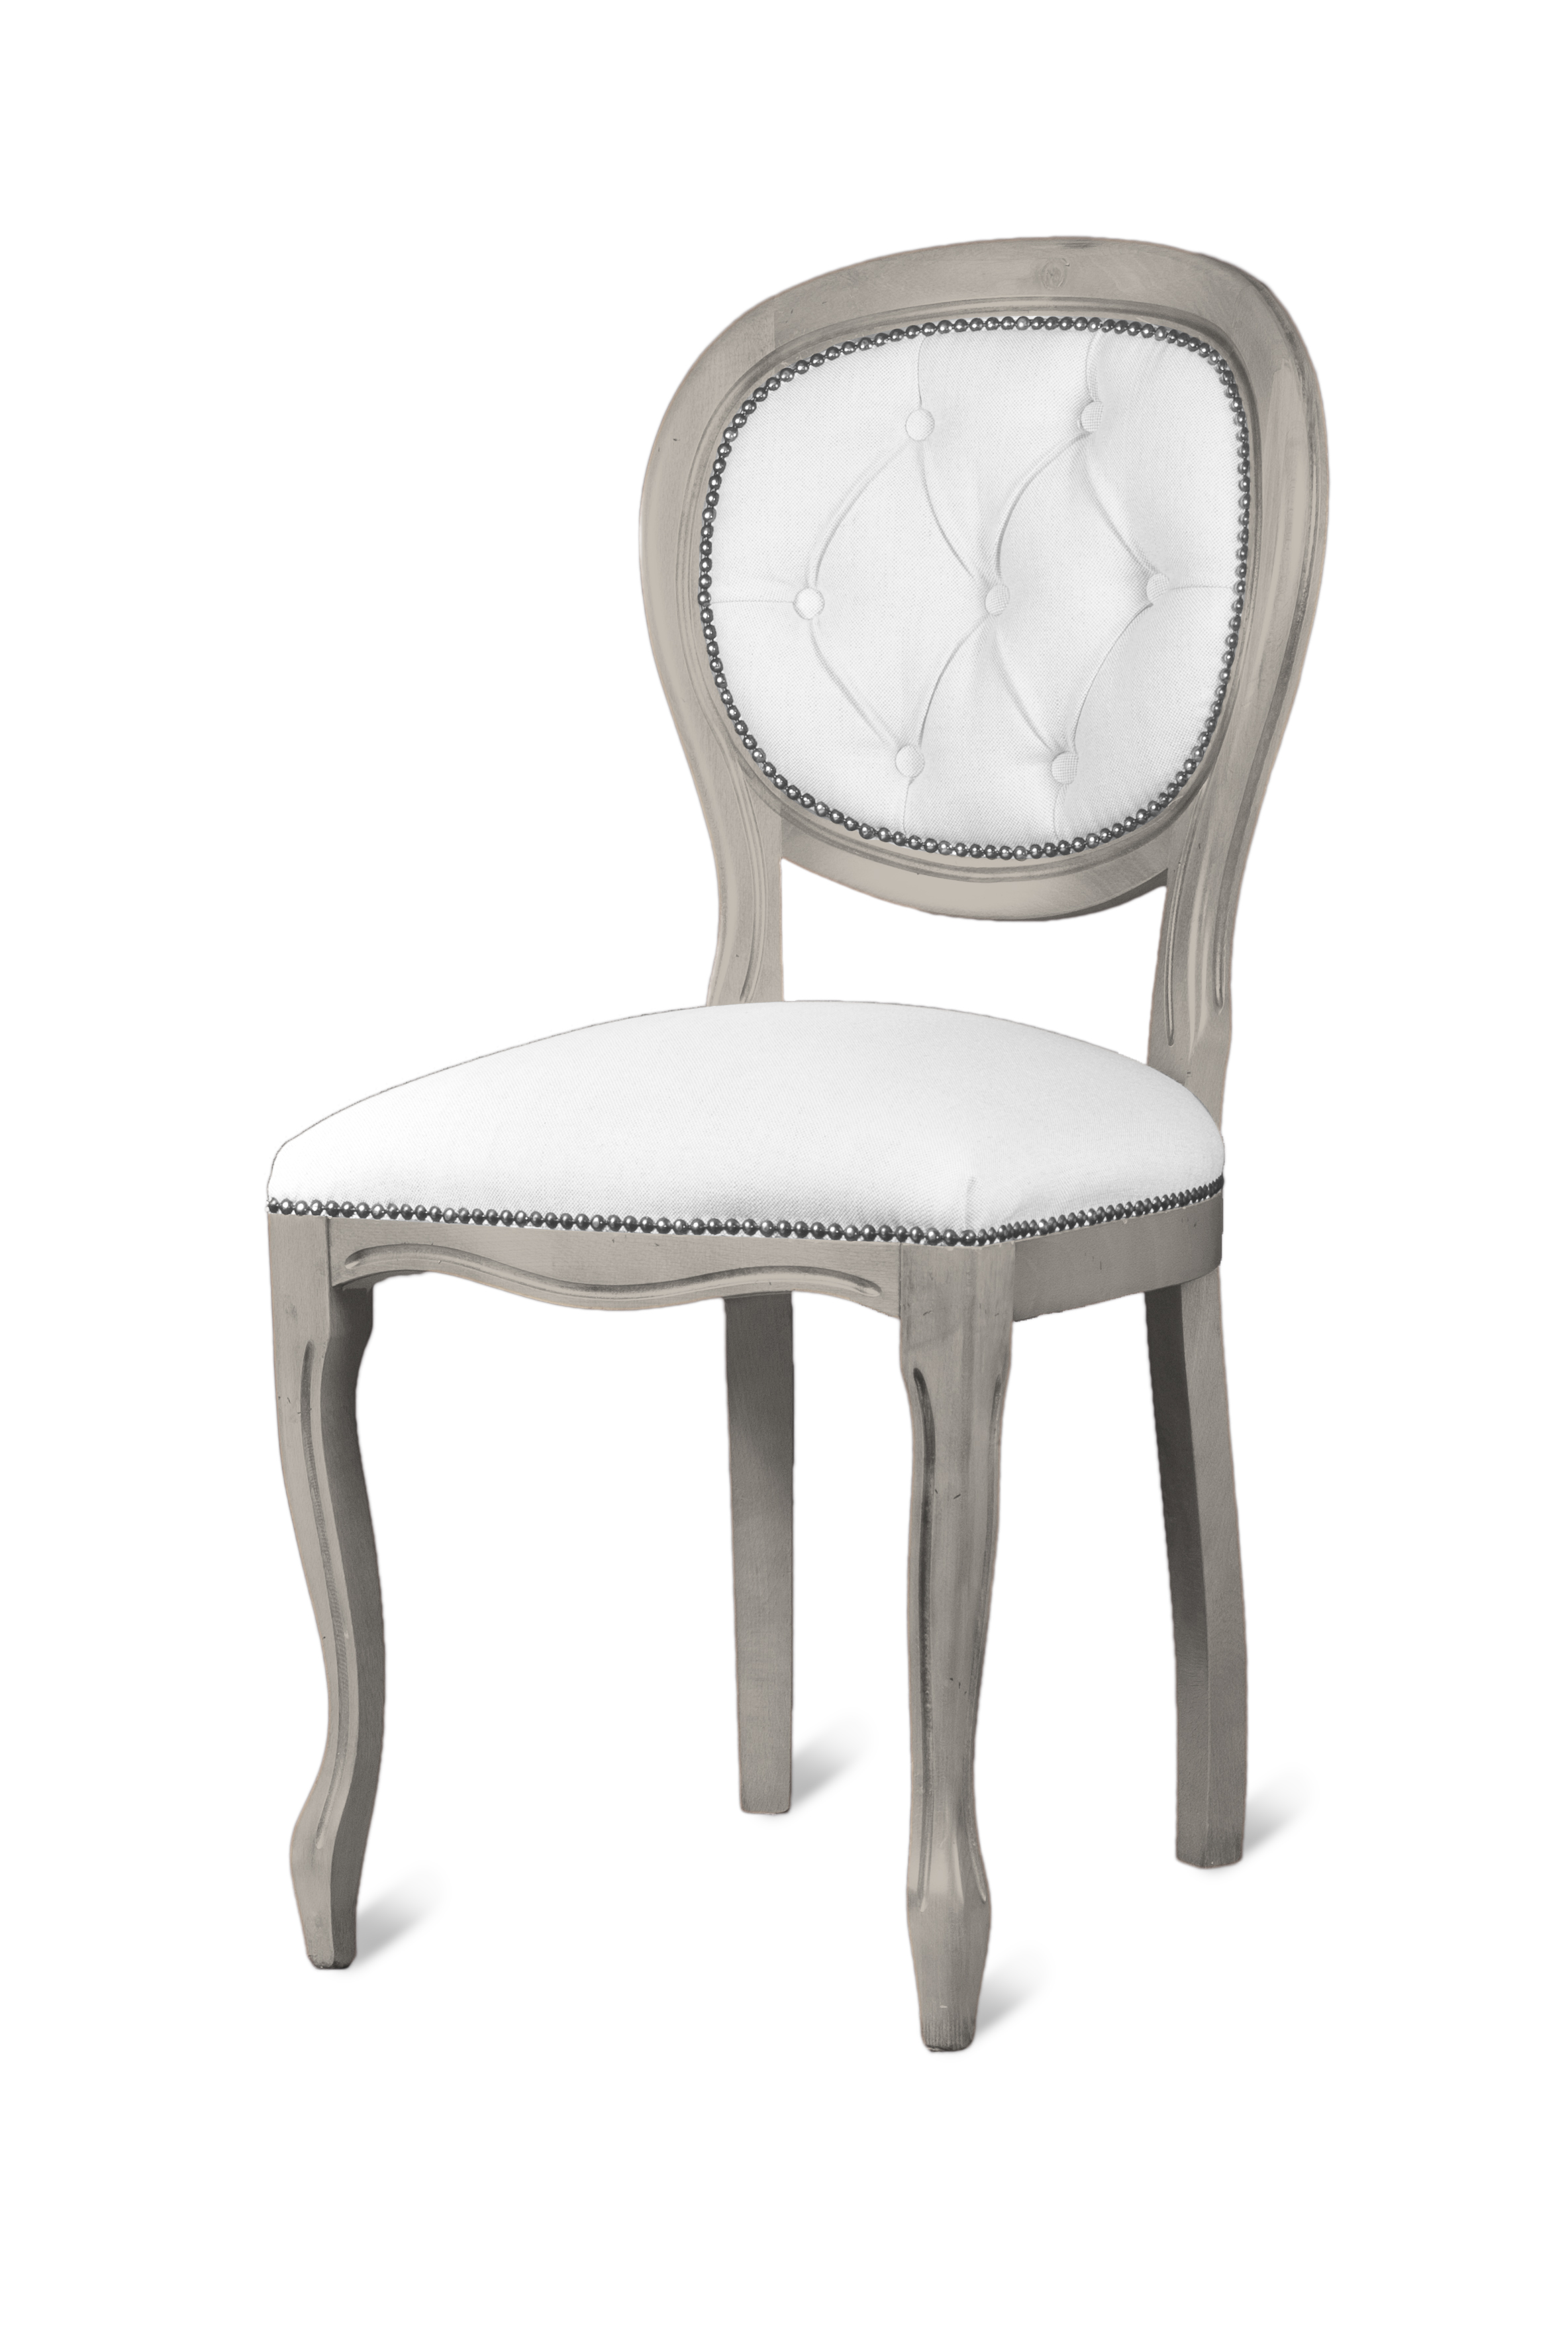 HERITAGE TRADITIONAL LINE UPHOLSTERED CHAIR  w 50 x d 50 h 99 cm  ( seat height 50 cm )  € 433 ( 30% Off, Now €303.10 )  Product Code: TL-1218B  This piece may be orderedin any of the Heritage colours and finishes.